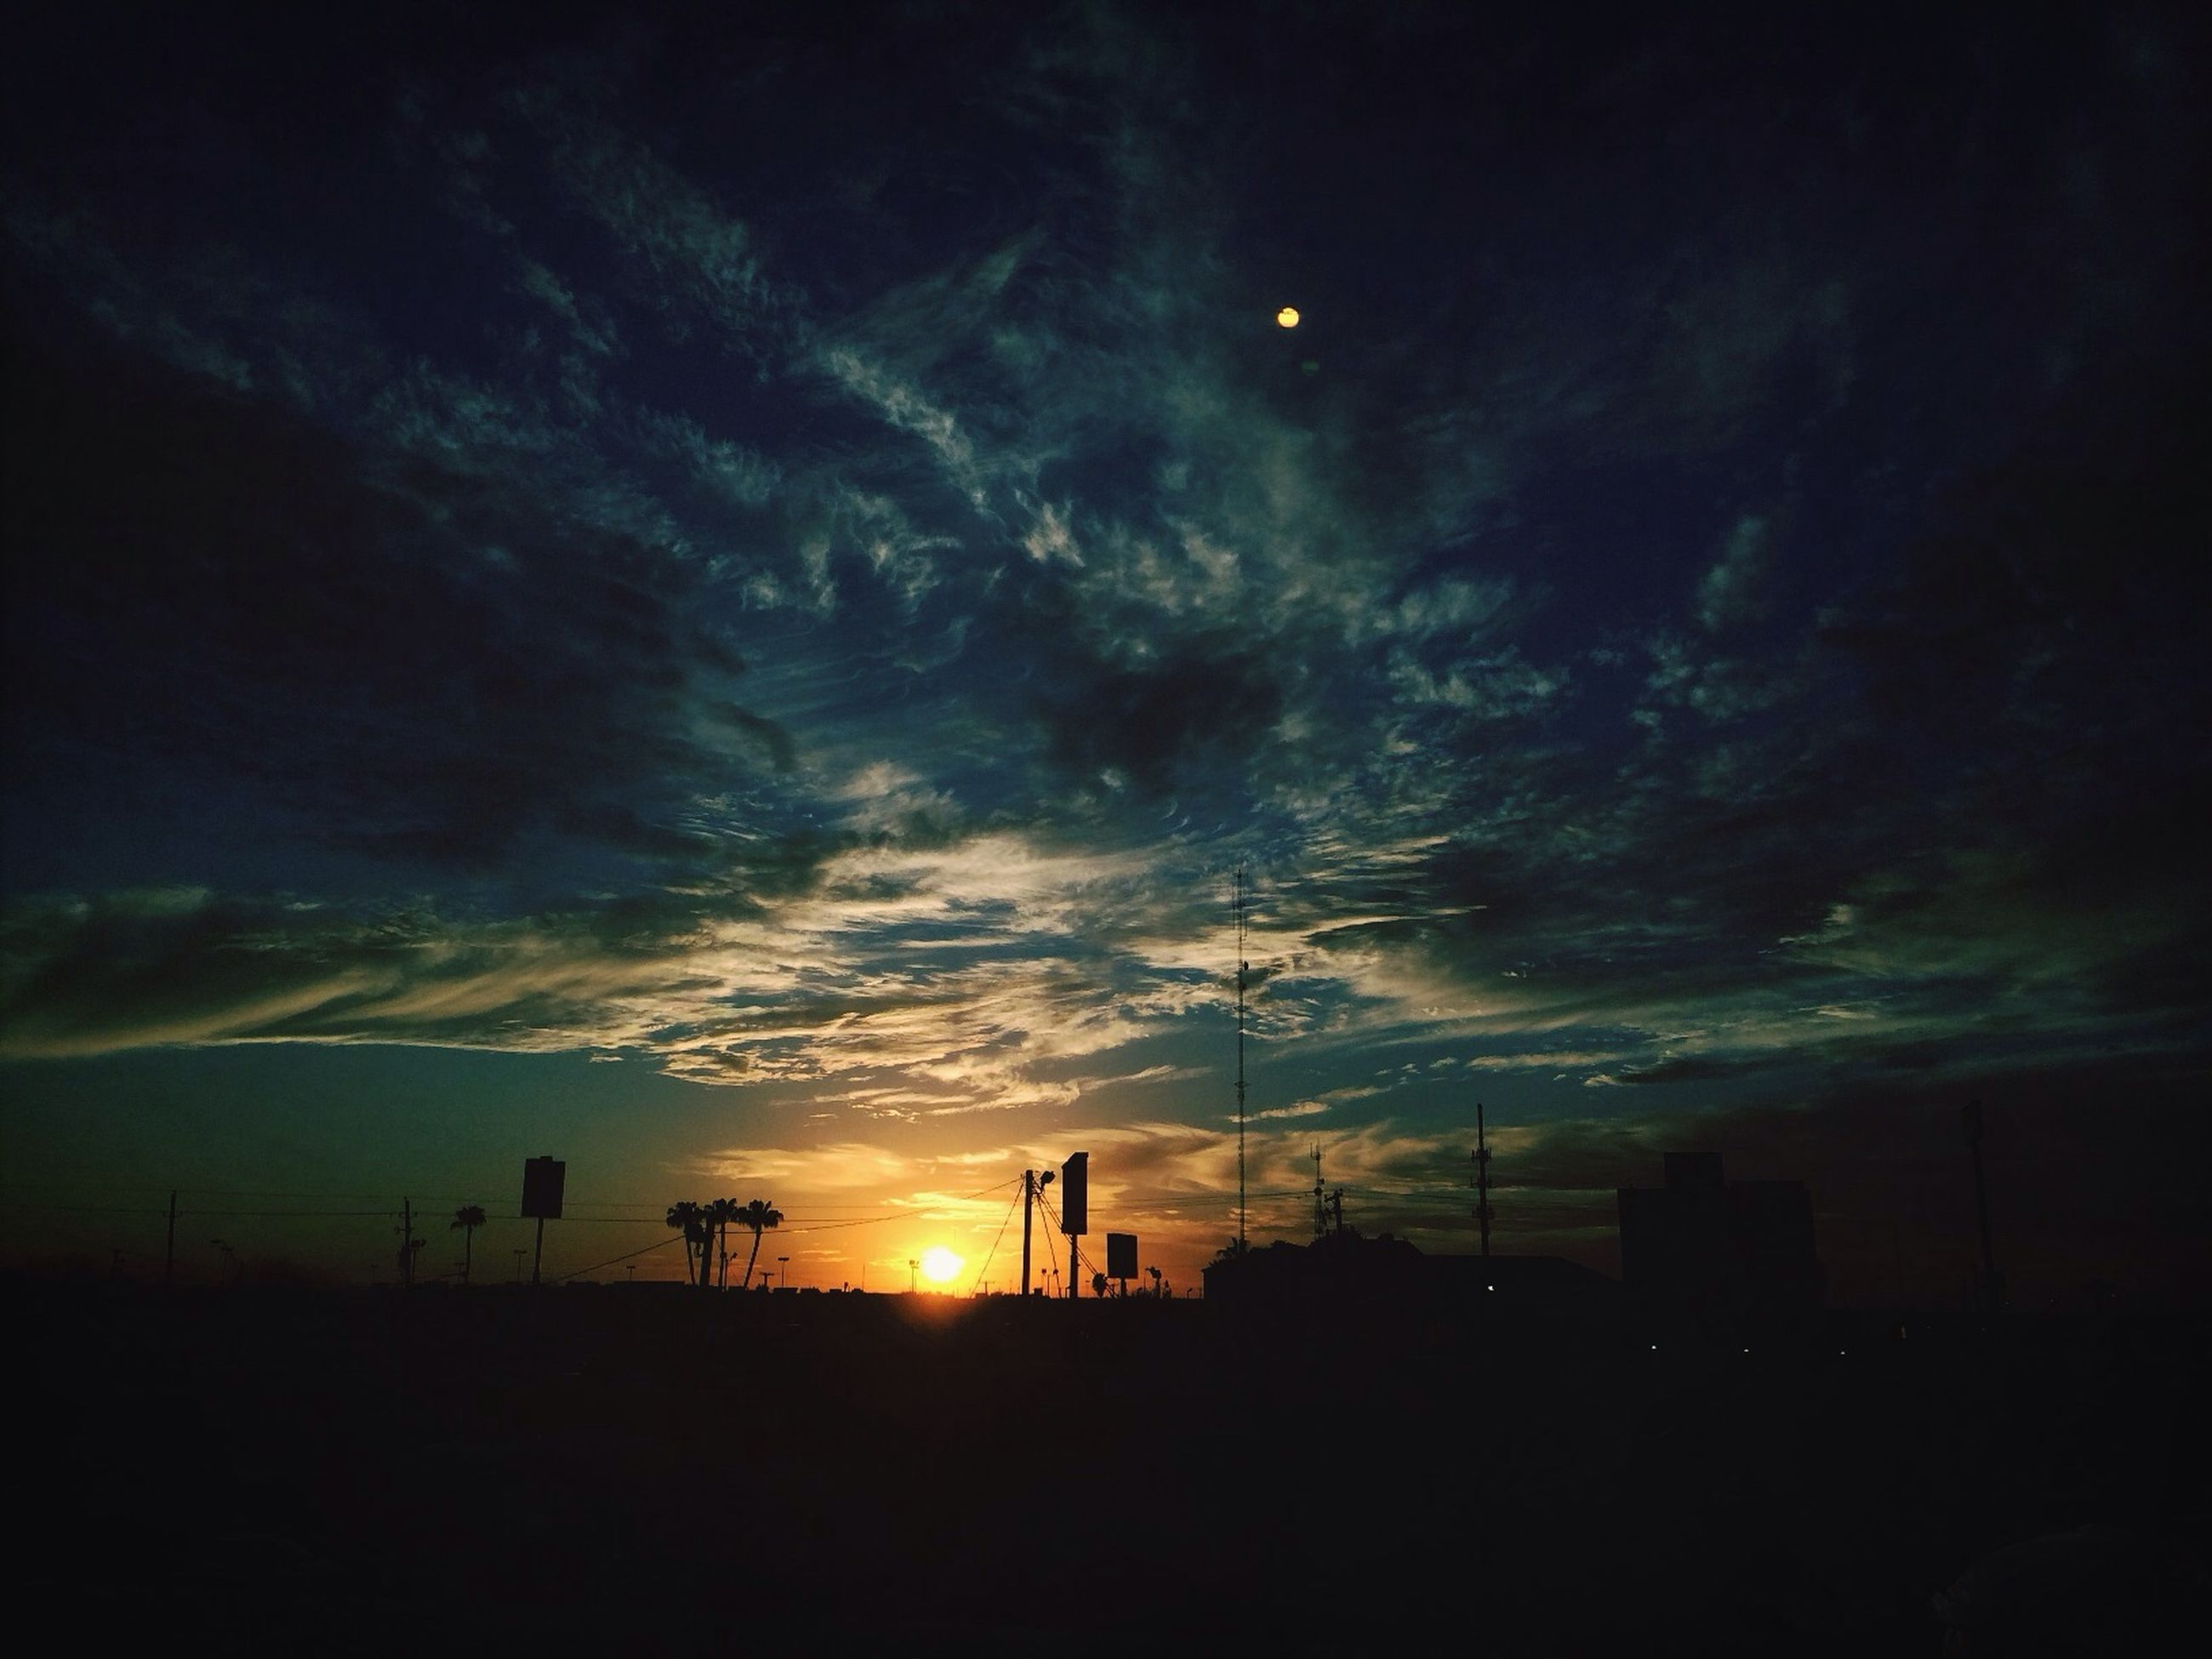 silhouette, sky, sunset, scenics, tranquil scene, beauty in nature, tranquility, cloud - sky, nature, landscape, dark, idyllic, dusk, dramatic sky, cloudy, weather, cloud, outdoors, atmospheric mood, storm cloud